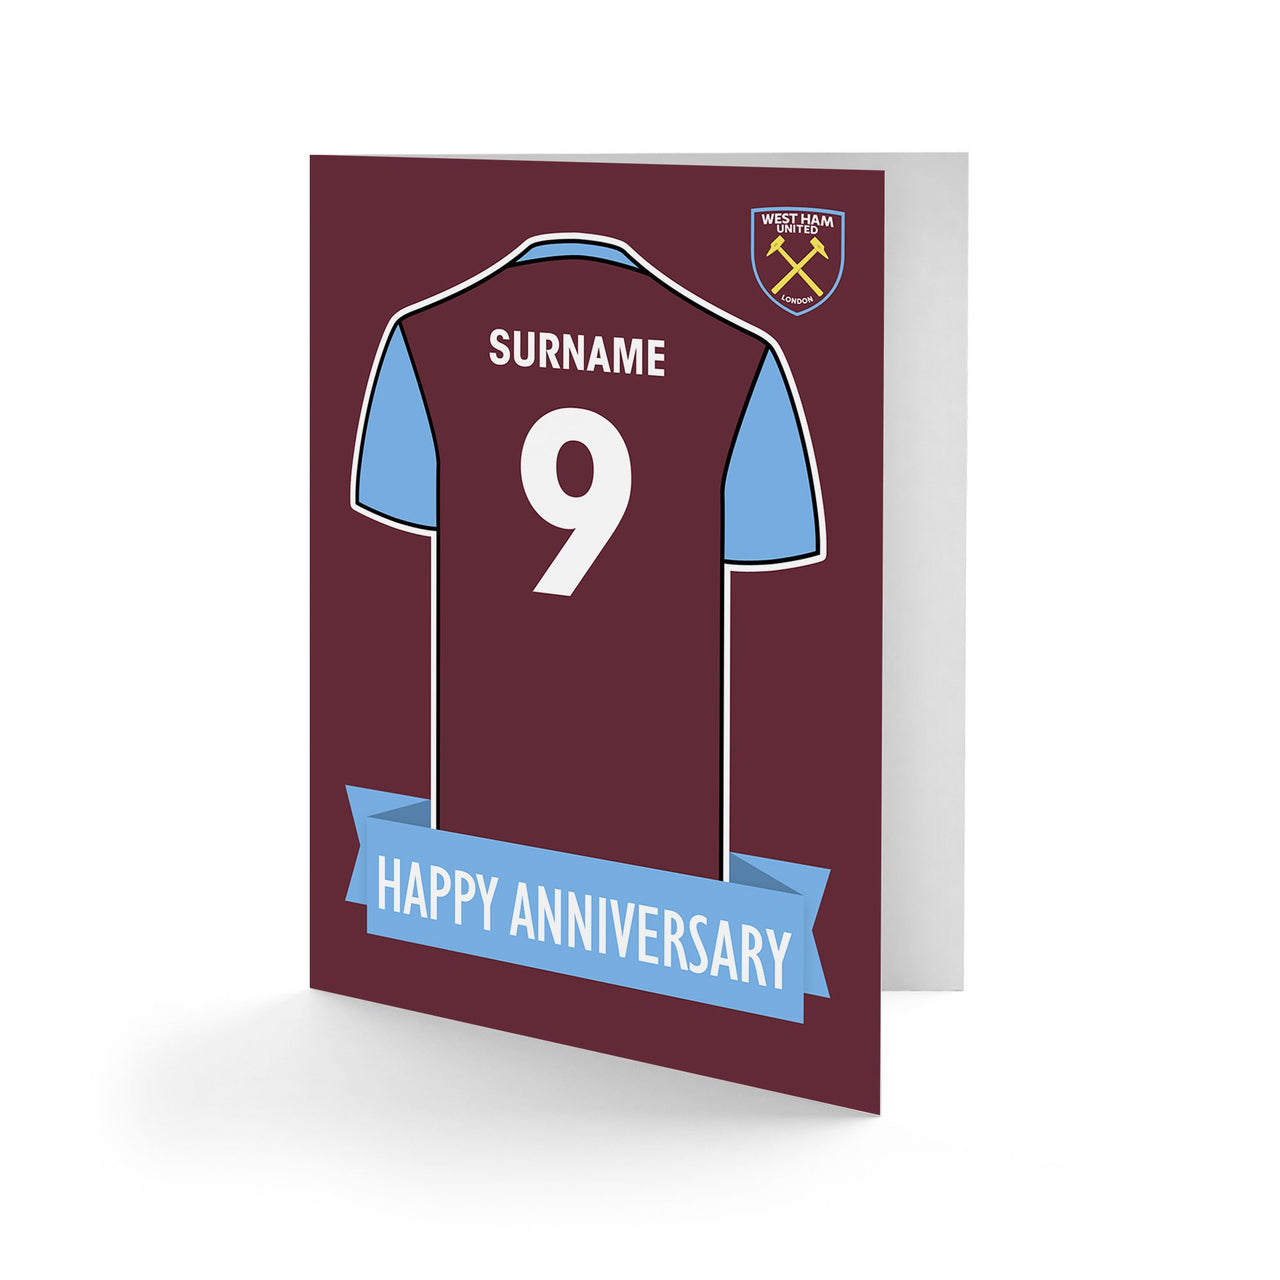 West Ham United FC Shirt Anniversary Card